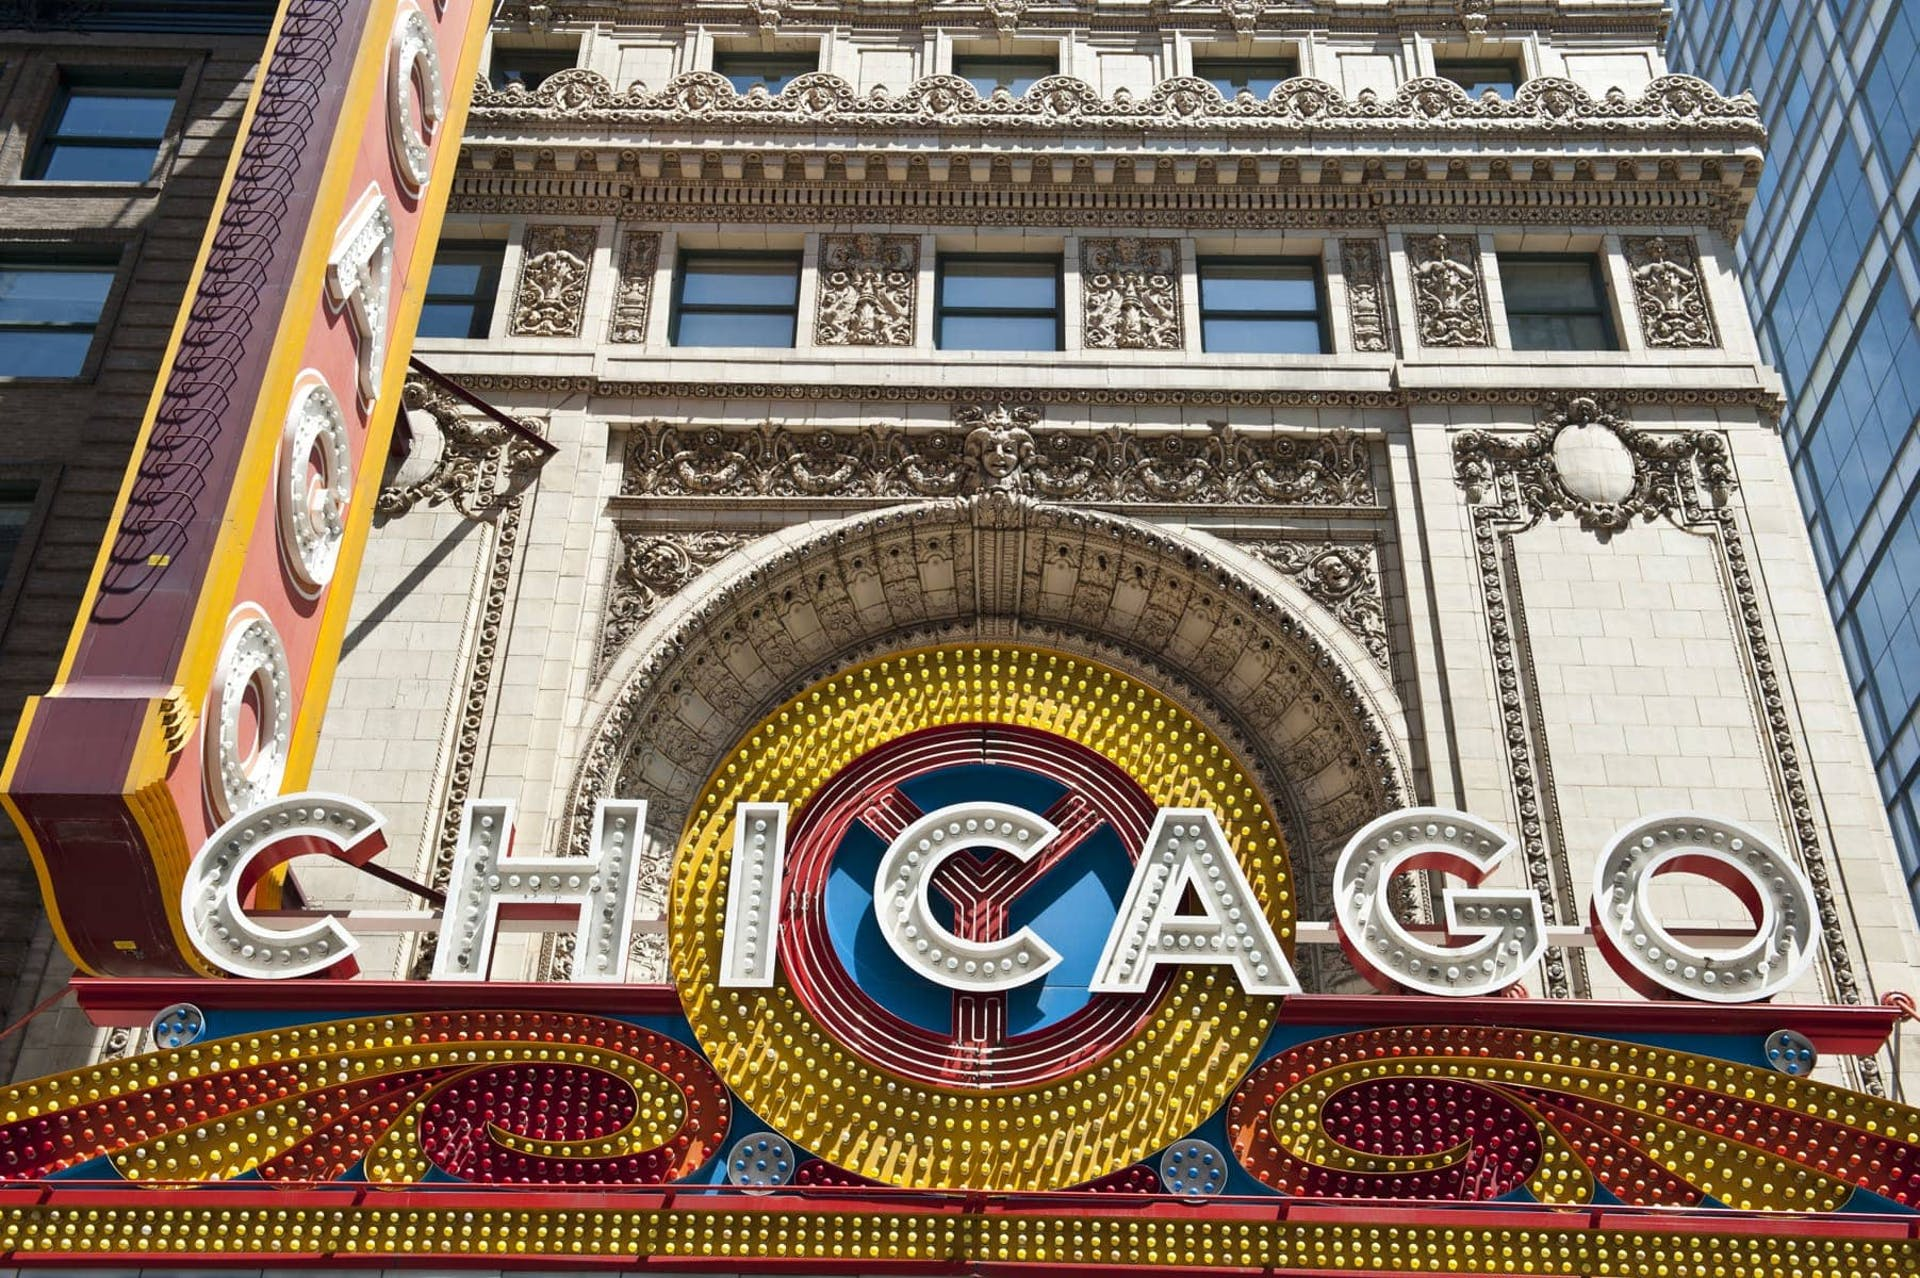 Exterior of Chicago Theatre